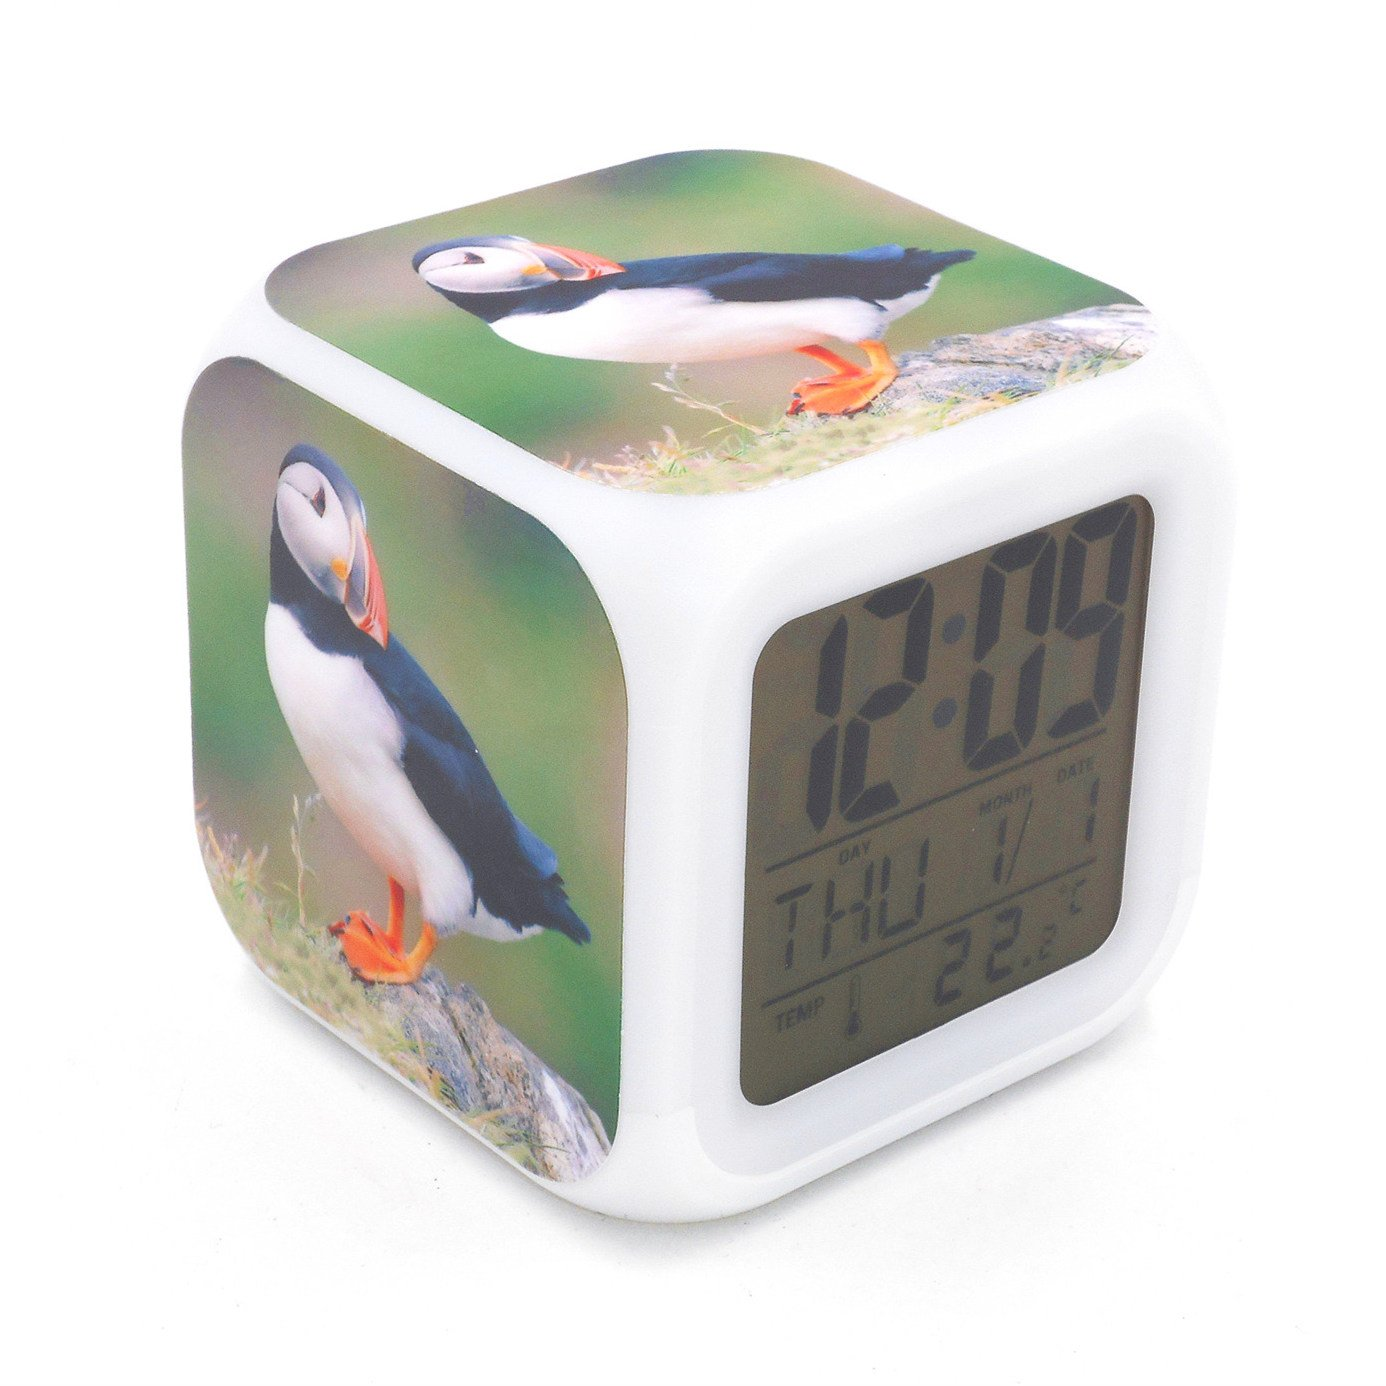 EGS New Sea Parrot Puffin Birds Animal Digital Alarm Clock Desk Table Led Alarm Clock Creative Personalized Multifunctional Battery Alarm Clock Special Toy Gift for Unisex Kids Adults